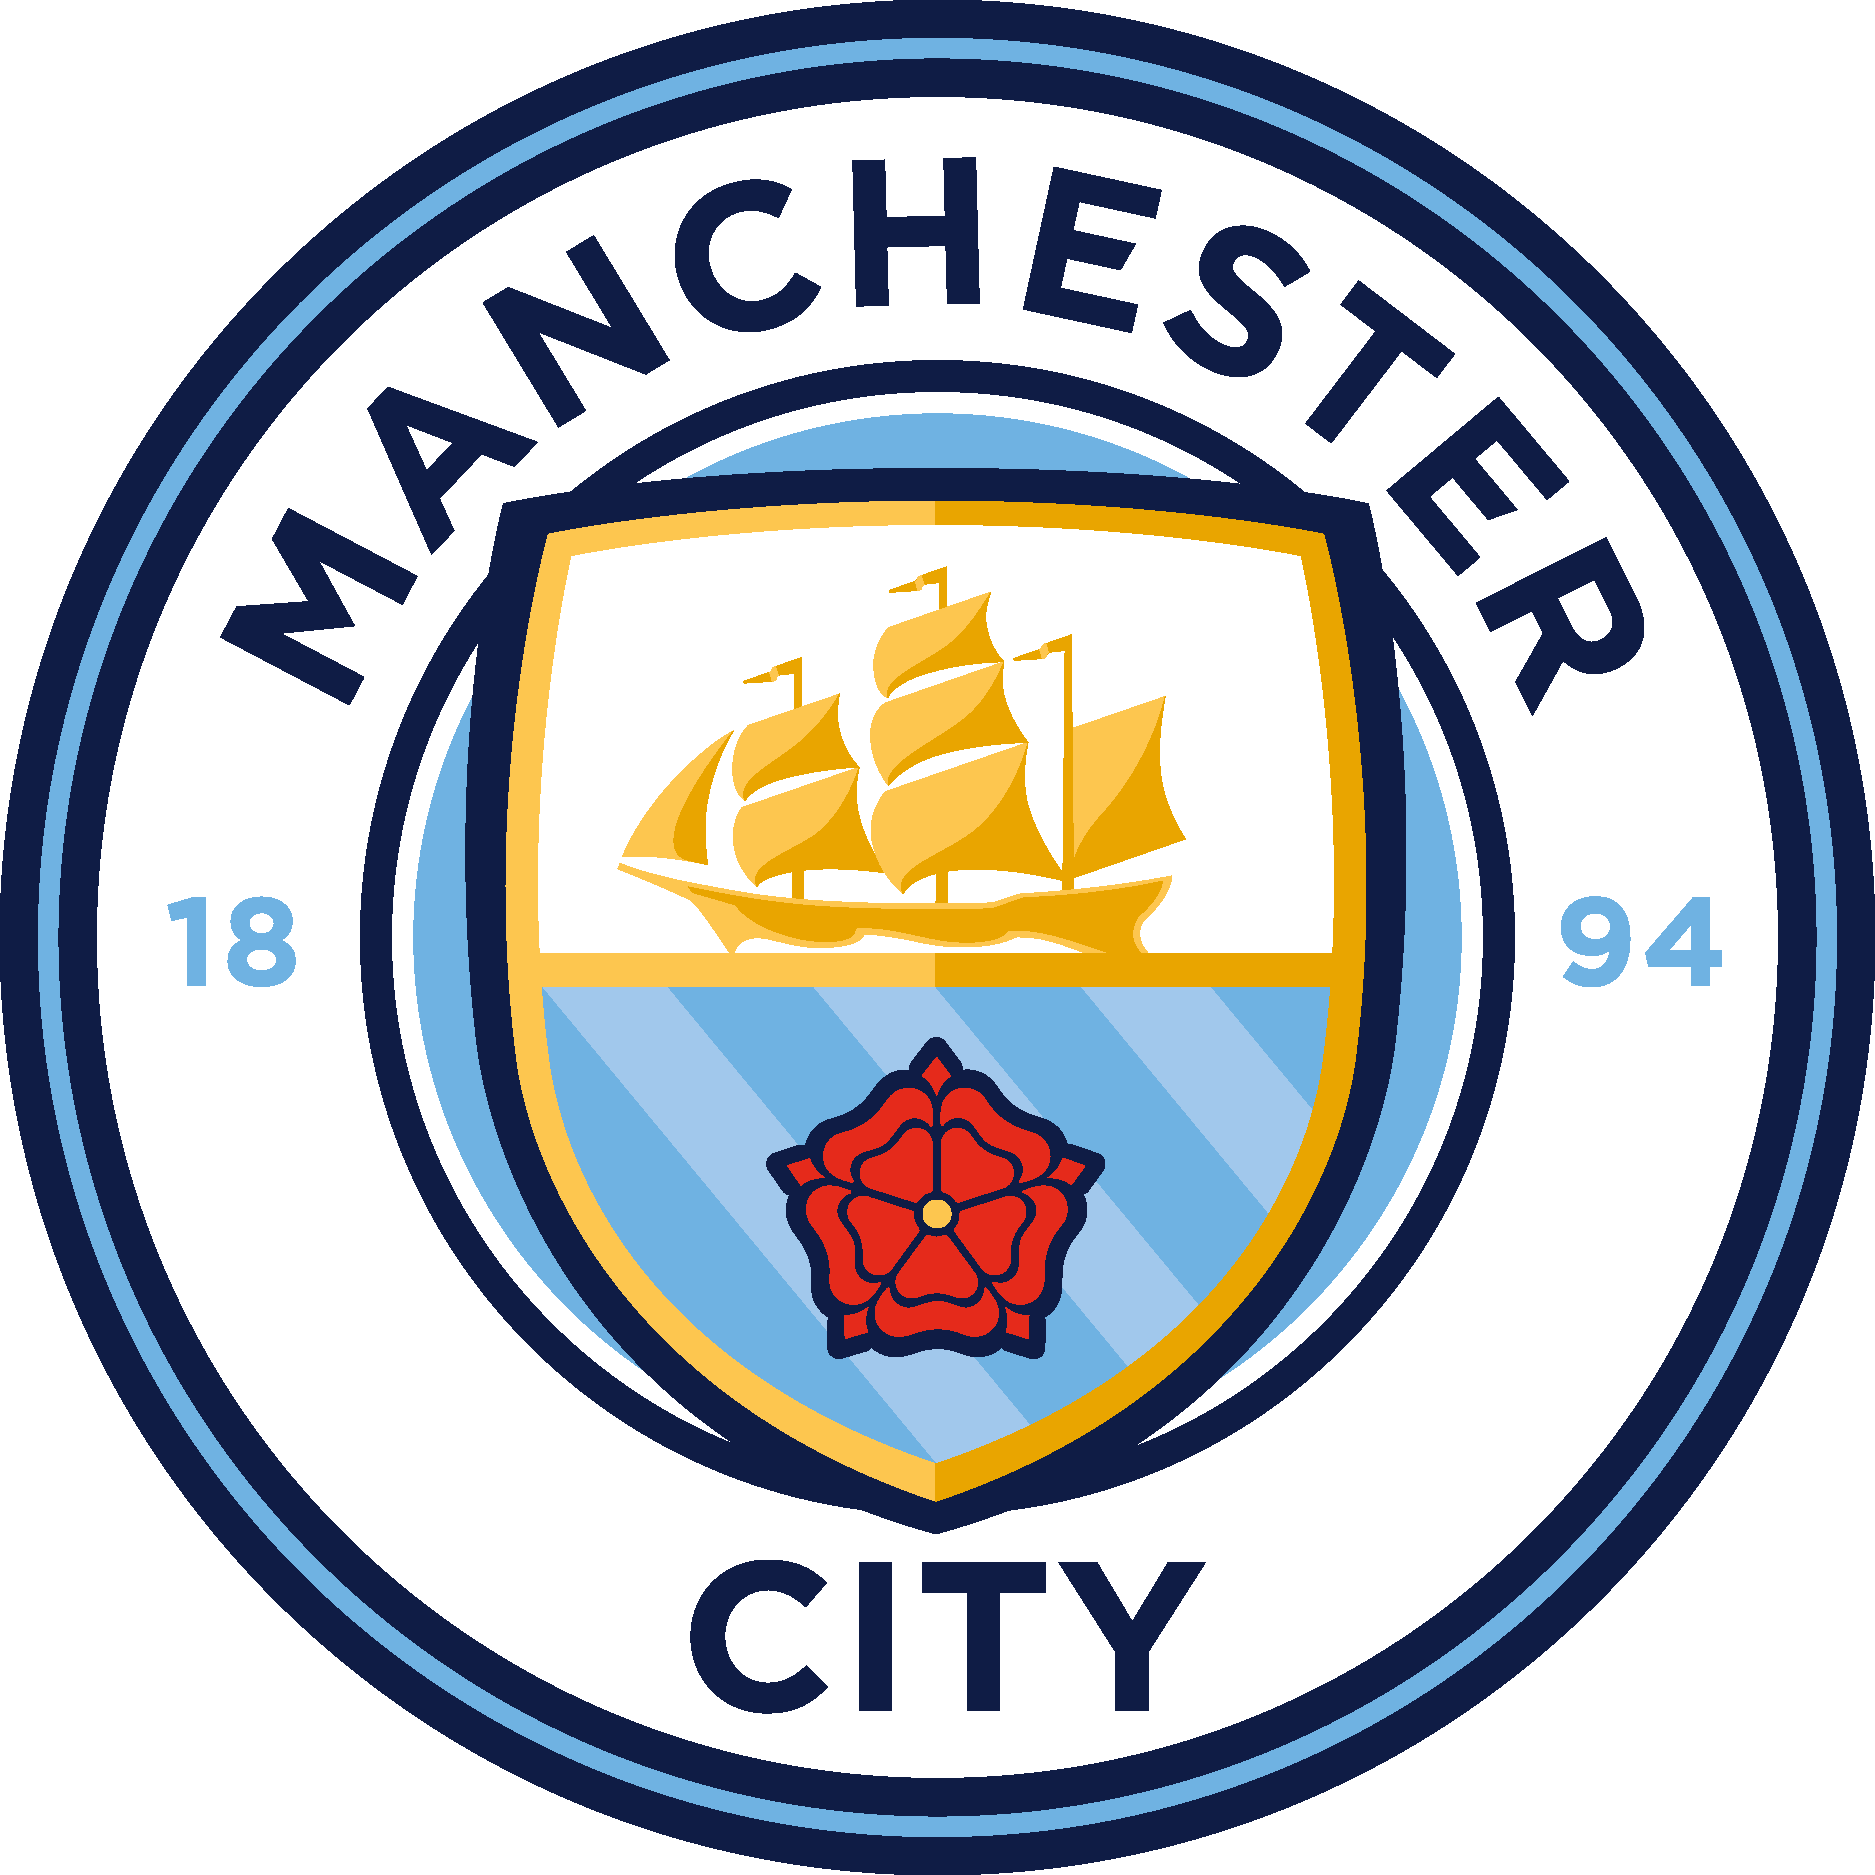 Manchester City Football Club Logo Eps File Vector Eps Free Download Logo Icons Clipart Manchester City Logo Manchester City Football Club Manchester City